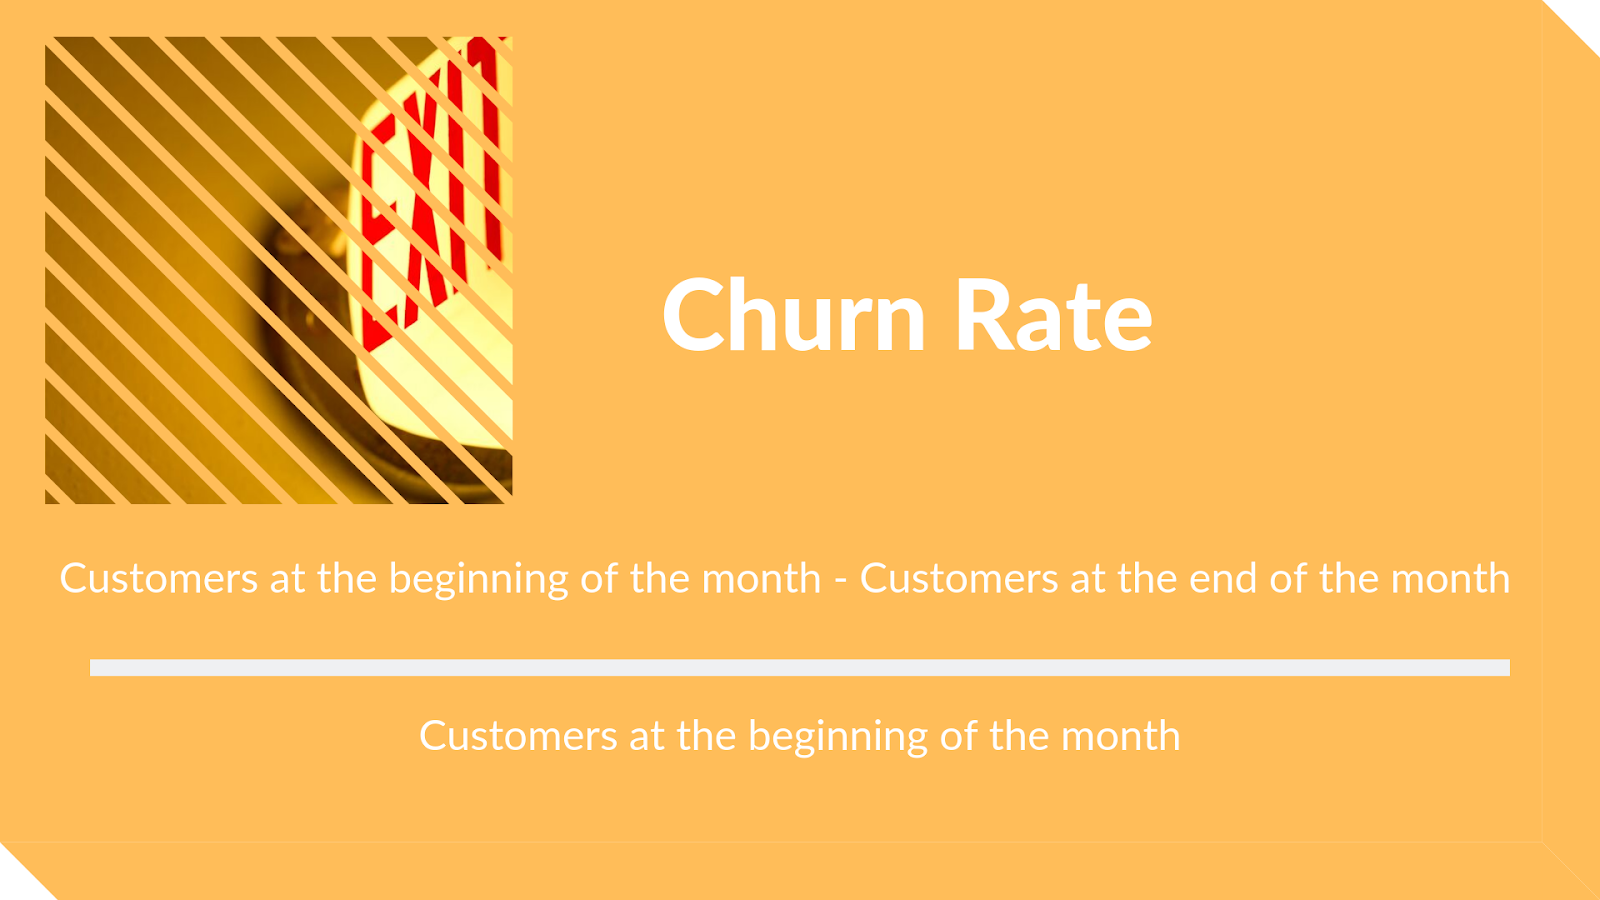 Churn - loyalty metrics